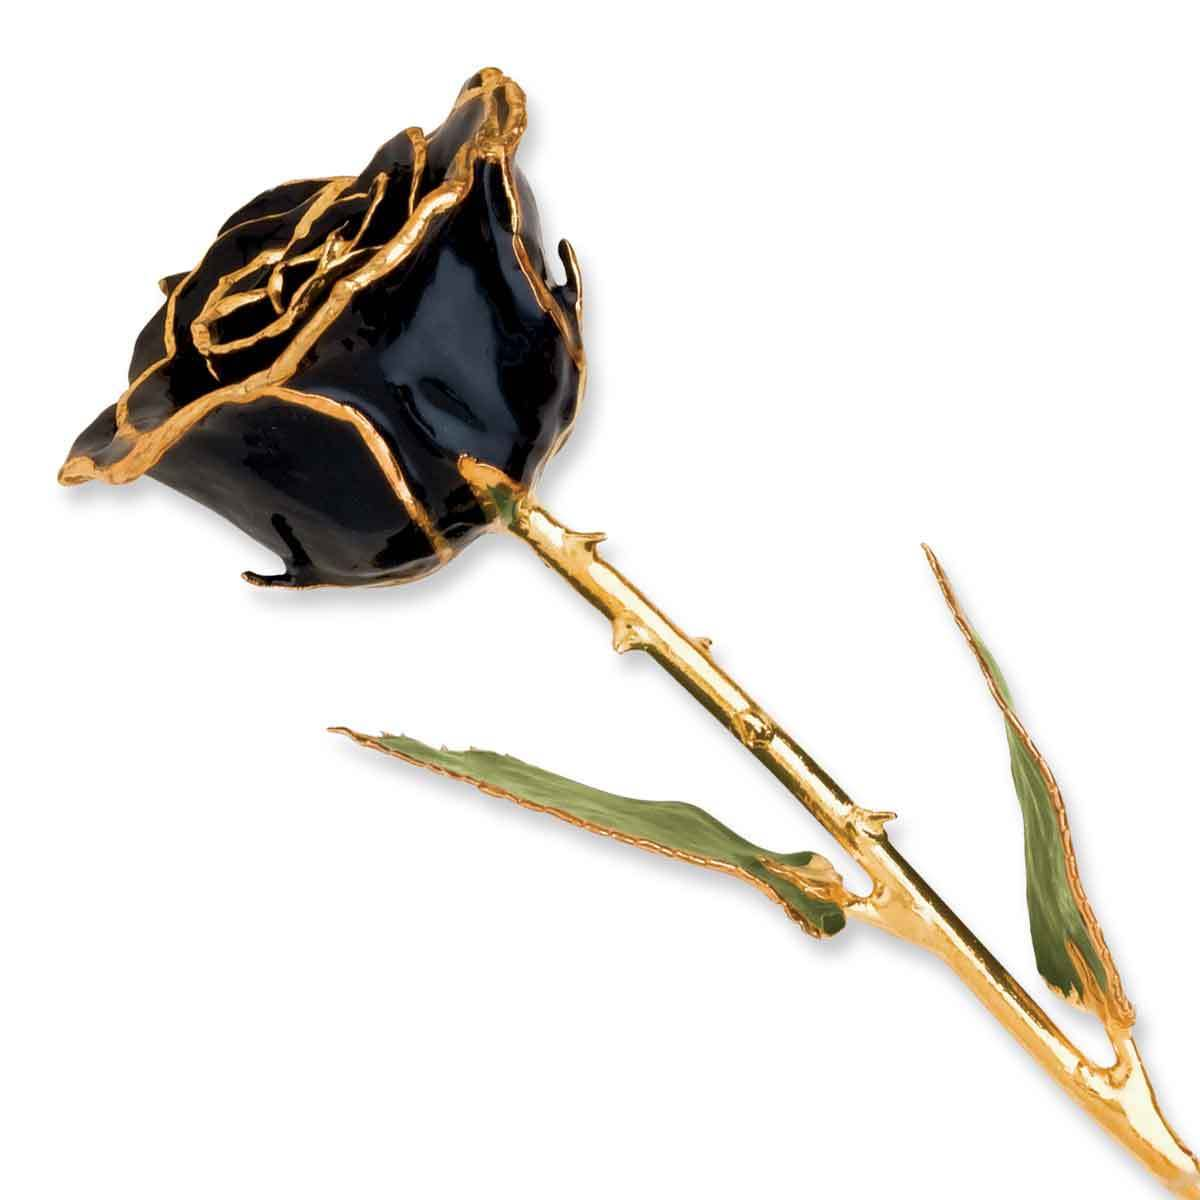 NO BRAND Lacquer Dipped 24k Gold Trim Black Rose (11 Inch)